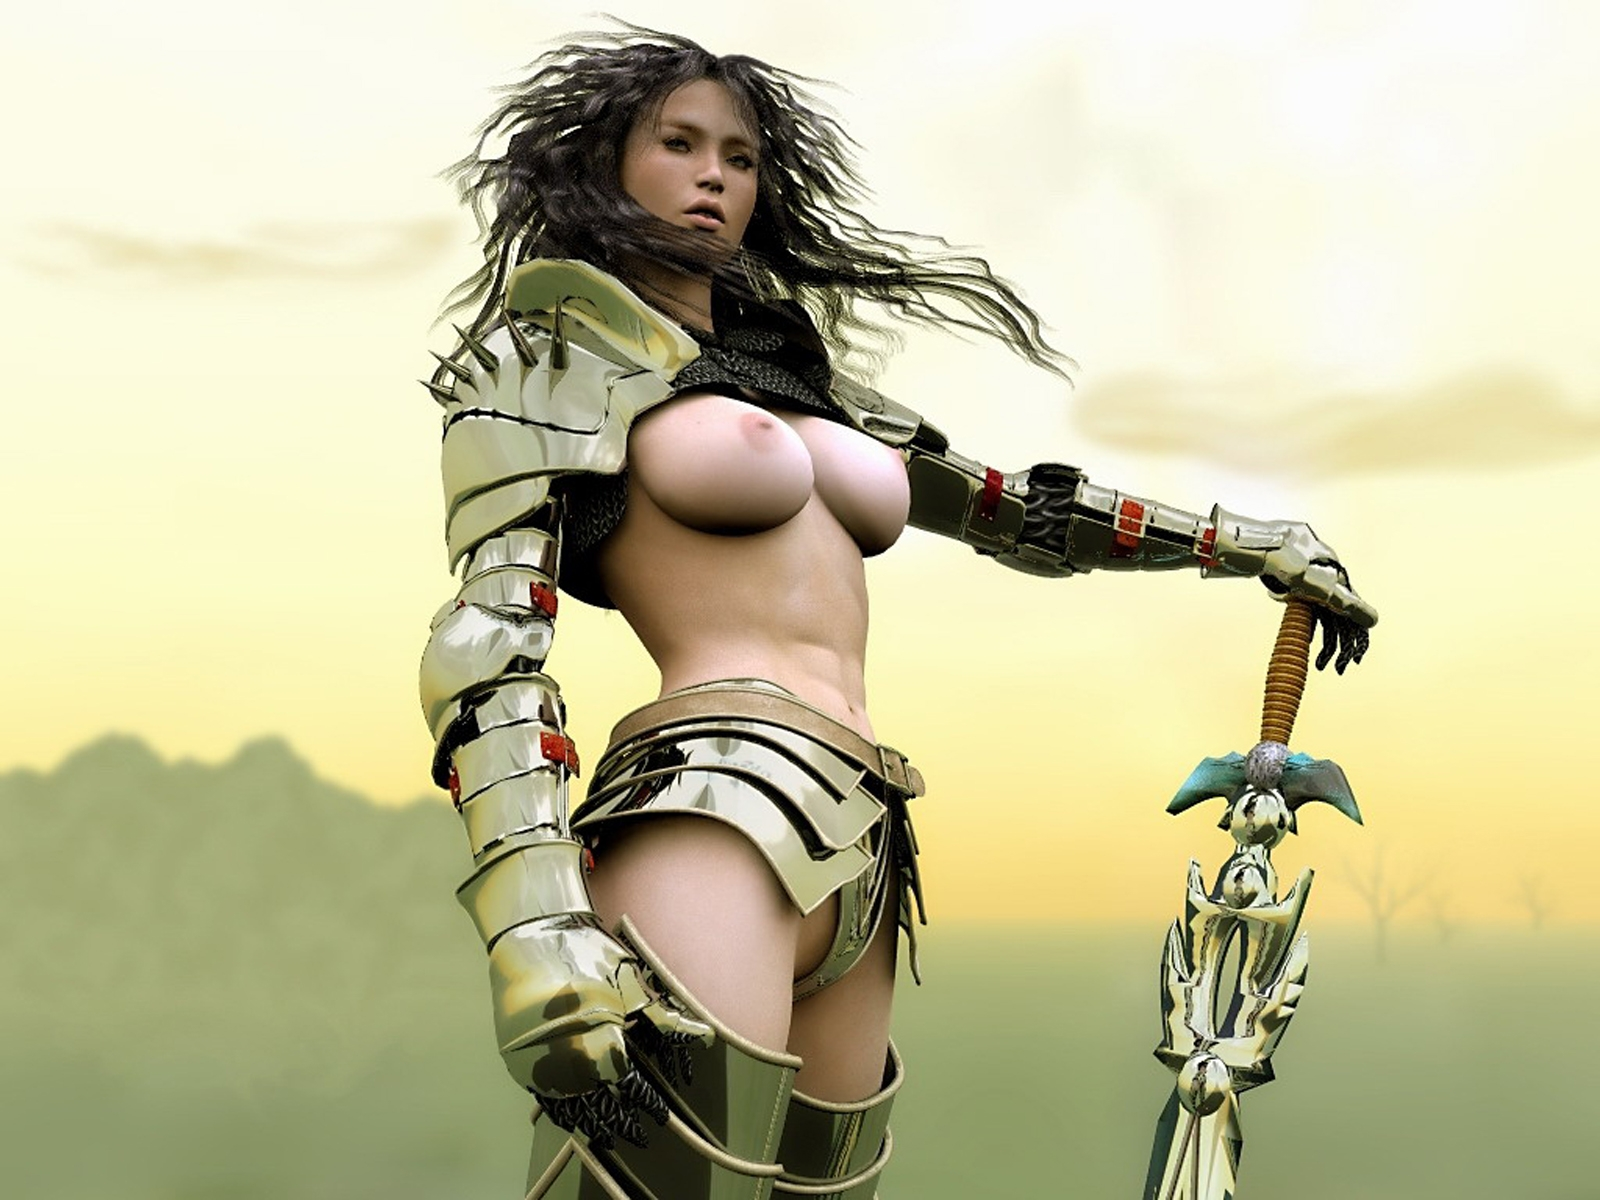 Erotic warrior woman porn scene